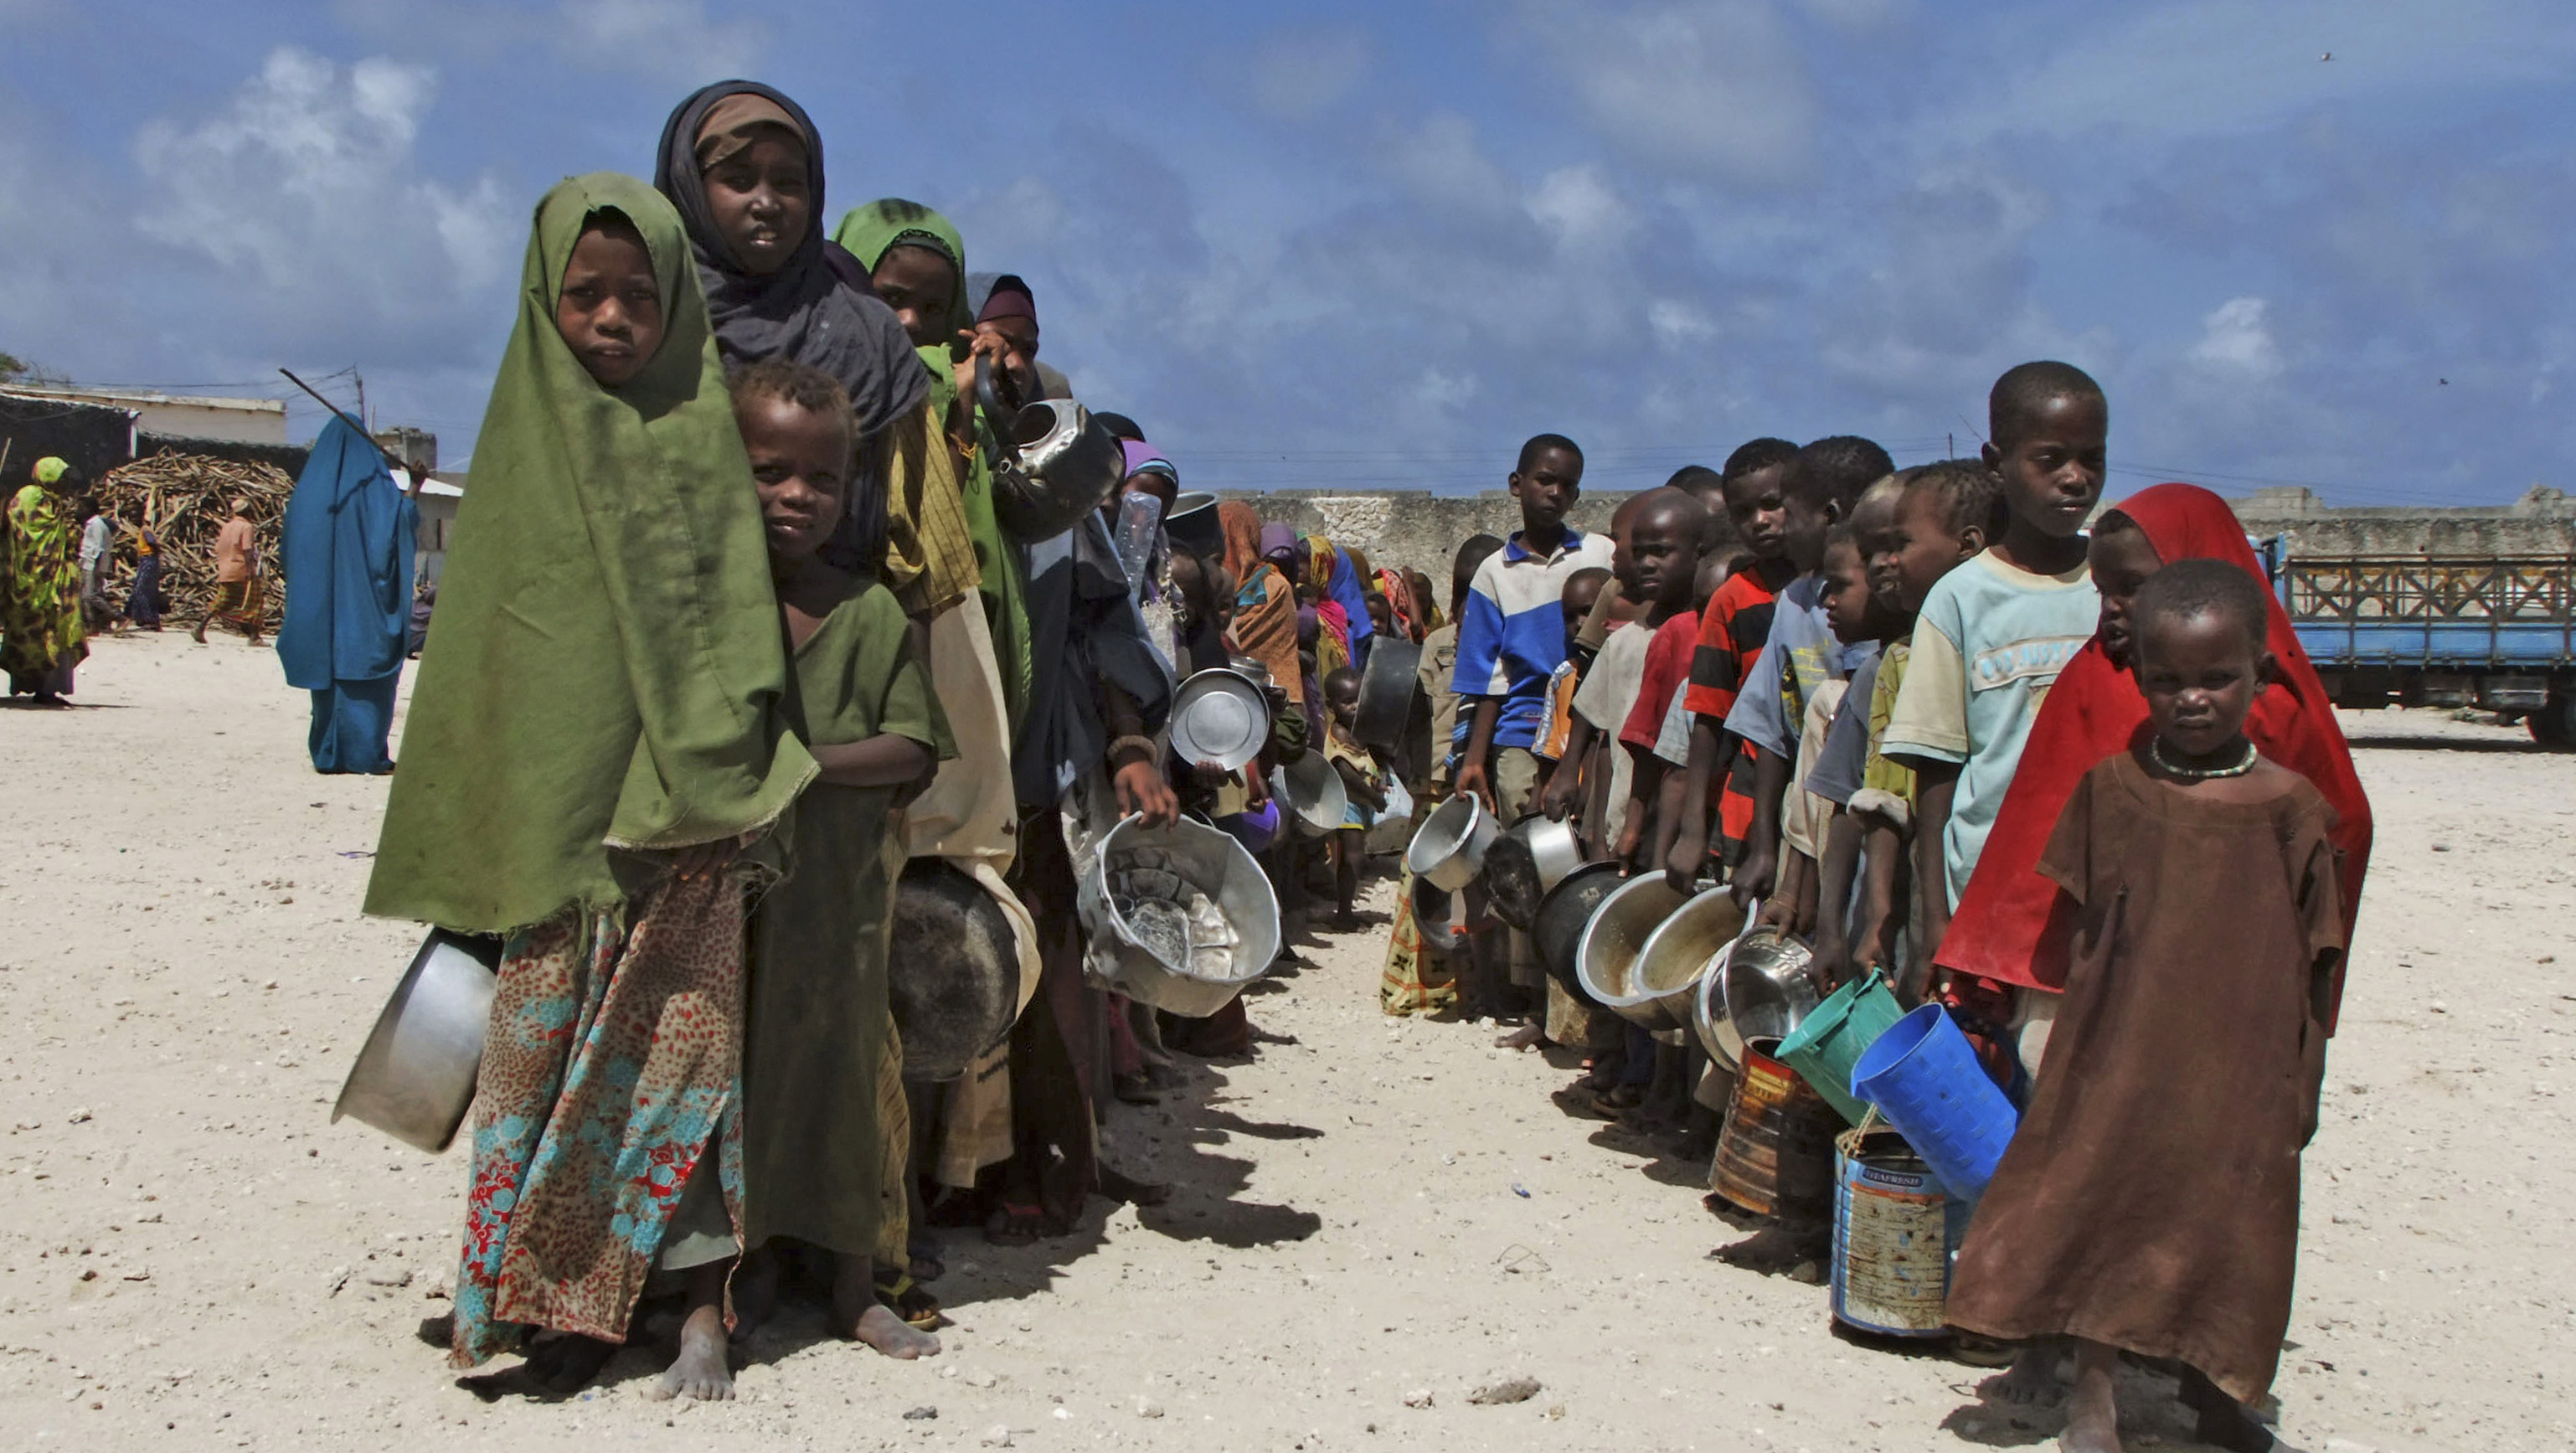 using the images of somalia to explain its culture The history, culture and politics of islam in africa today the legacy of islam and its contributions to african societies.